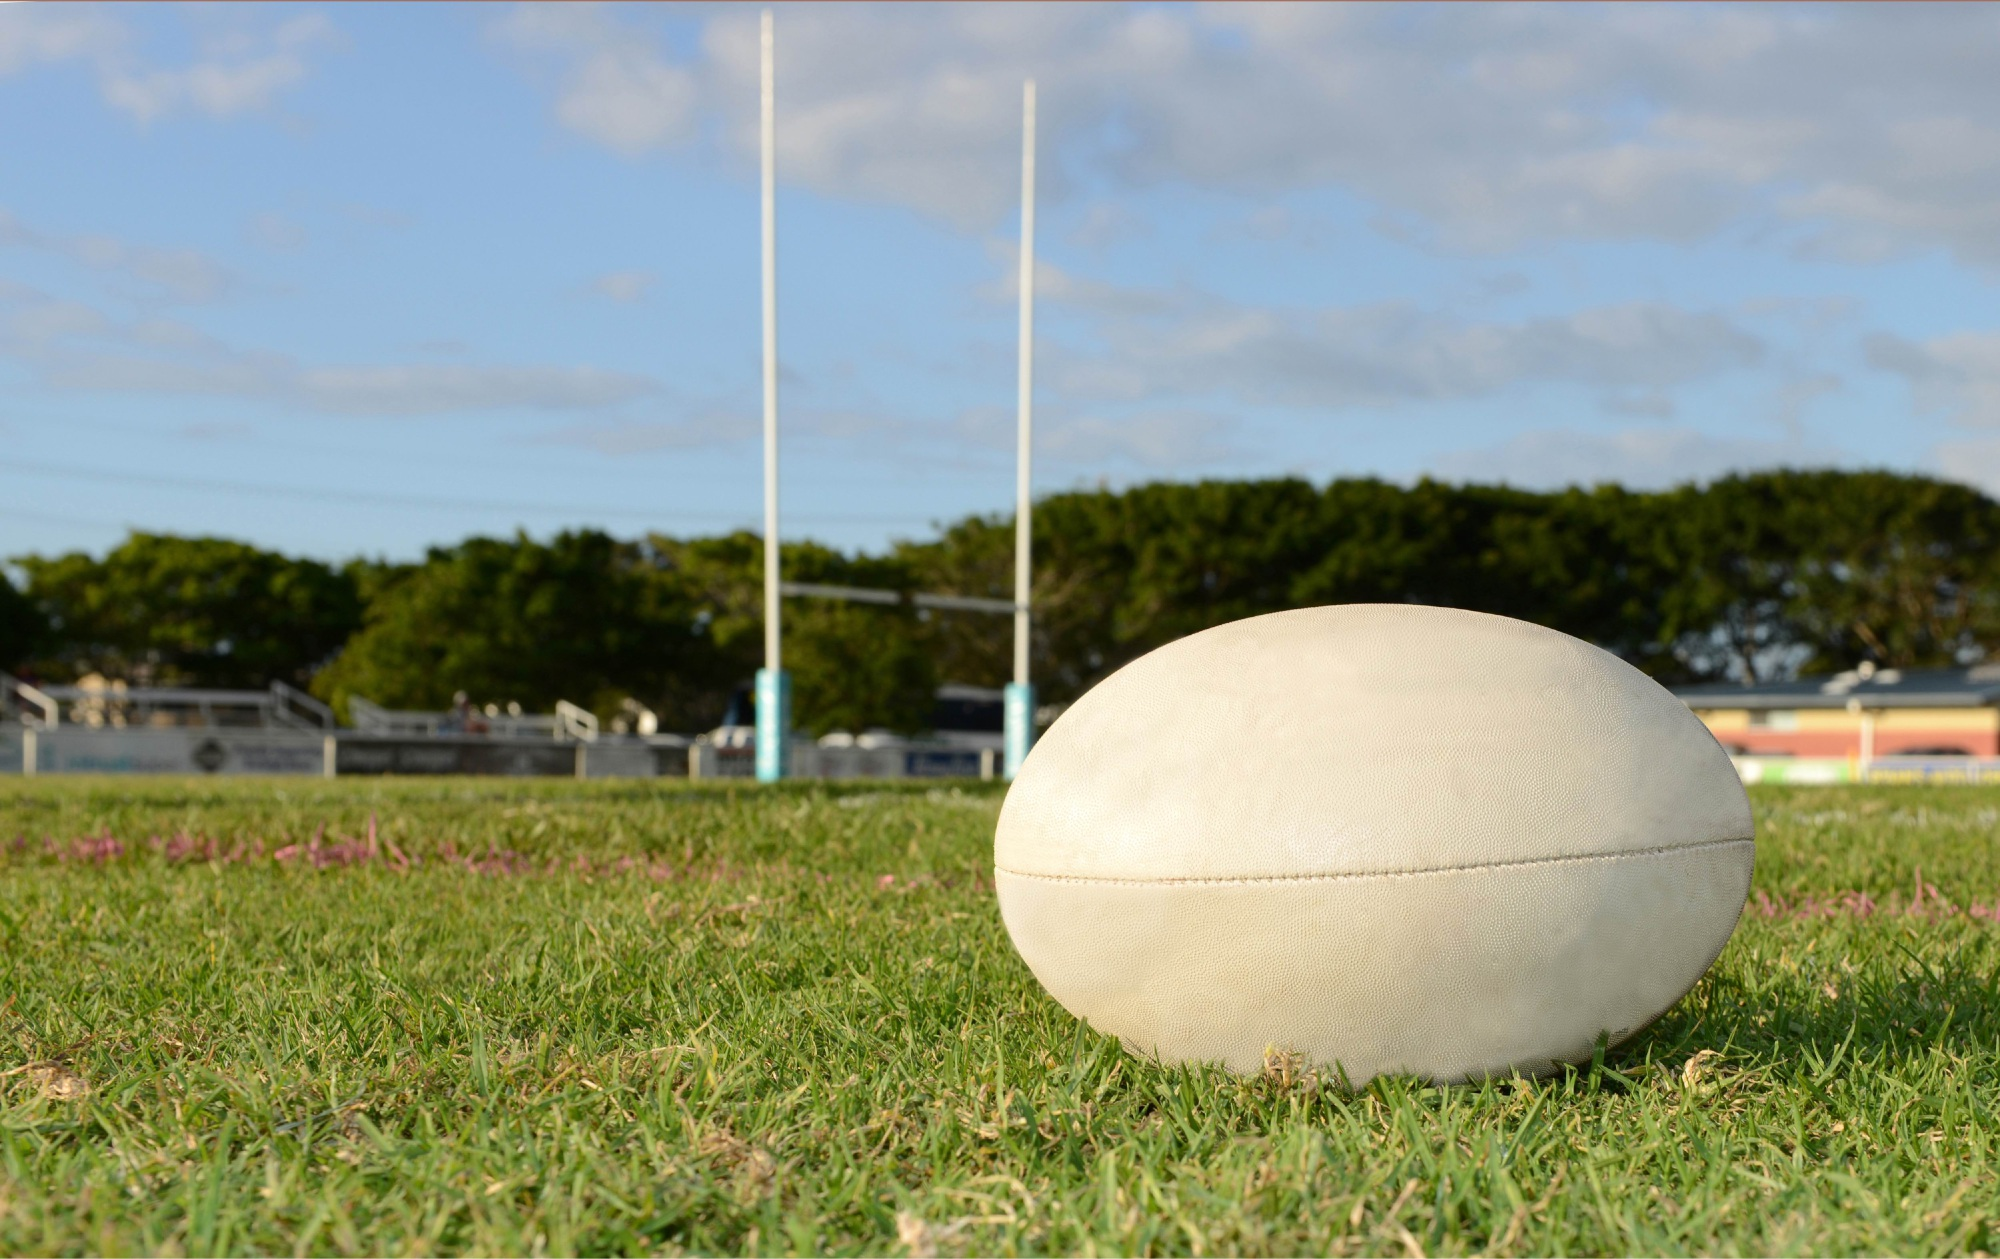 Rubgy Union: Wests best Palmyra